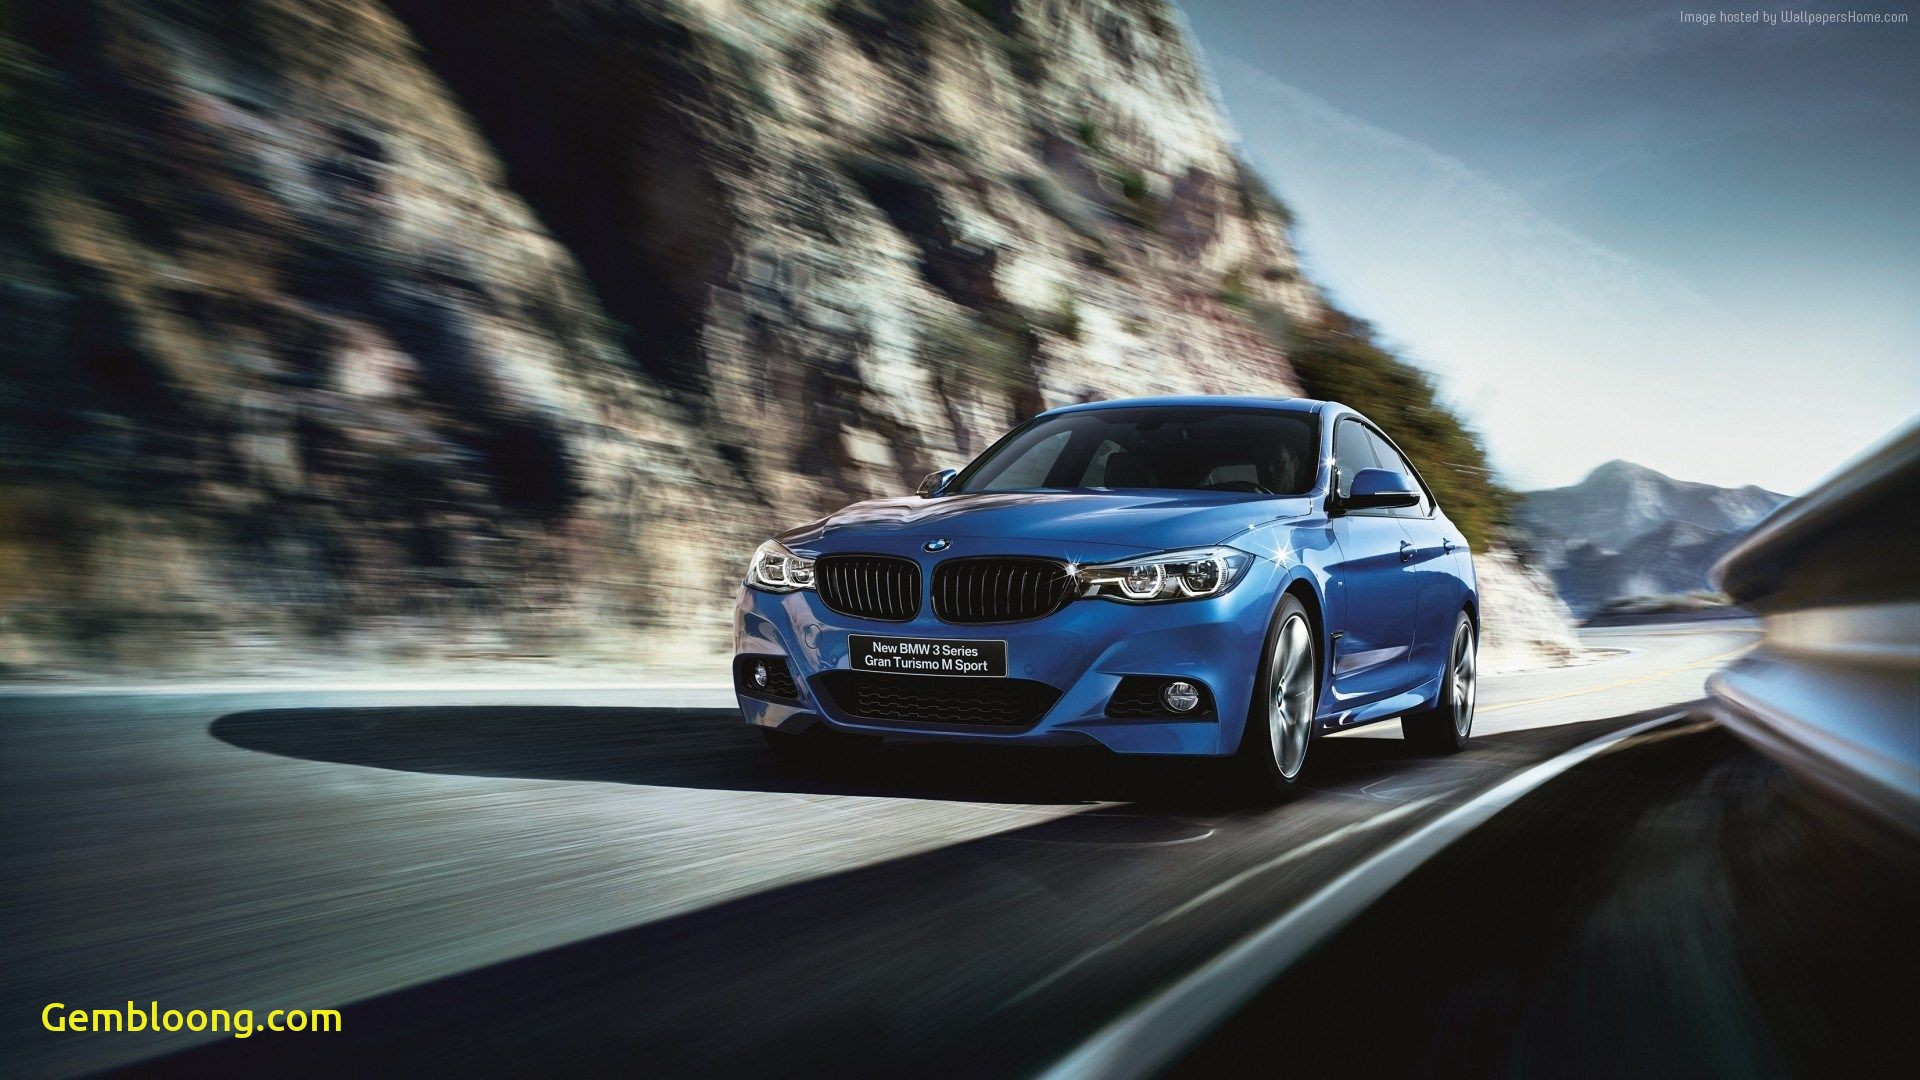 2015 Bmw 328i Inspirational Bmw 320i Wallpaper Wall Giftwatches Co